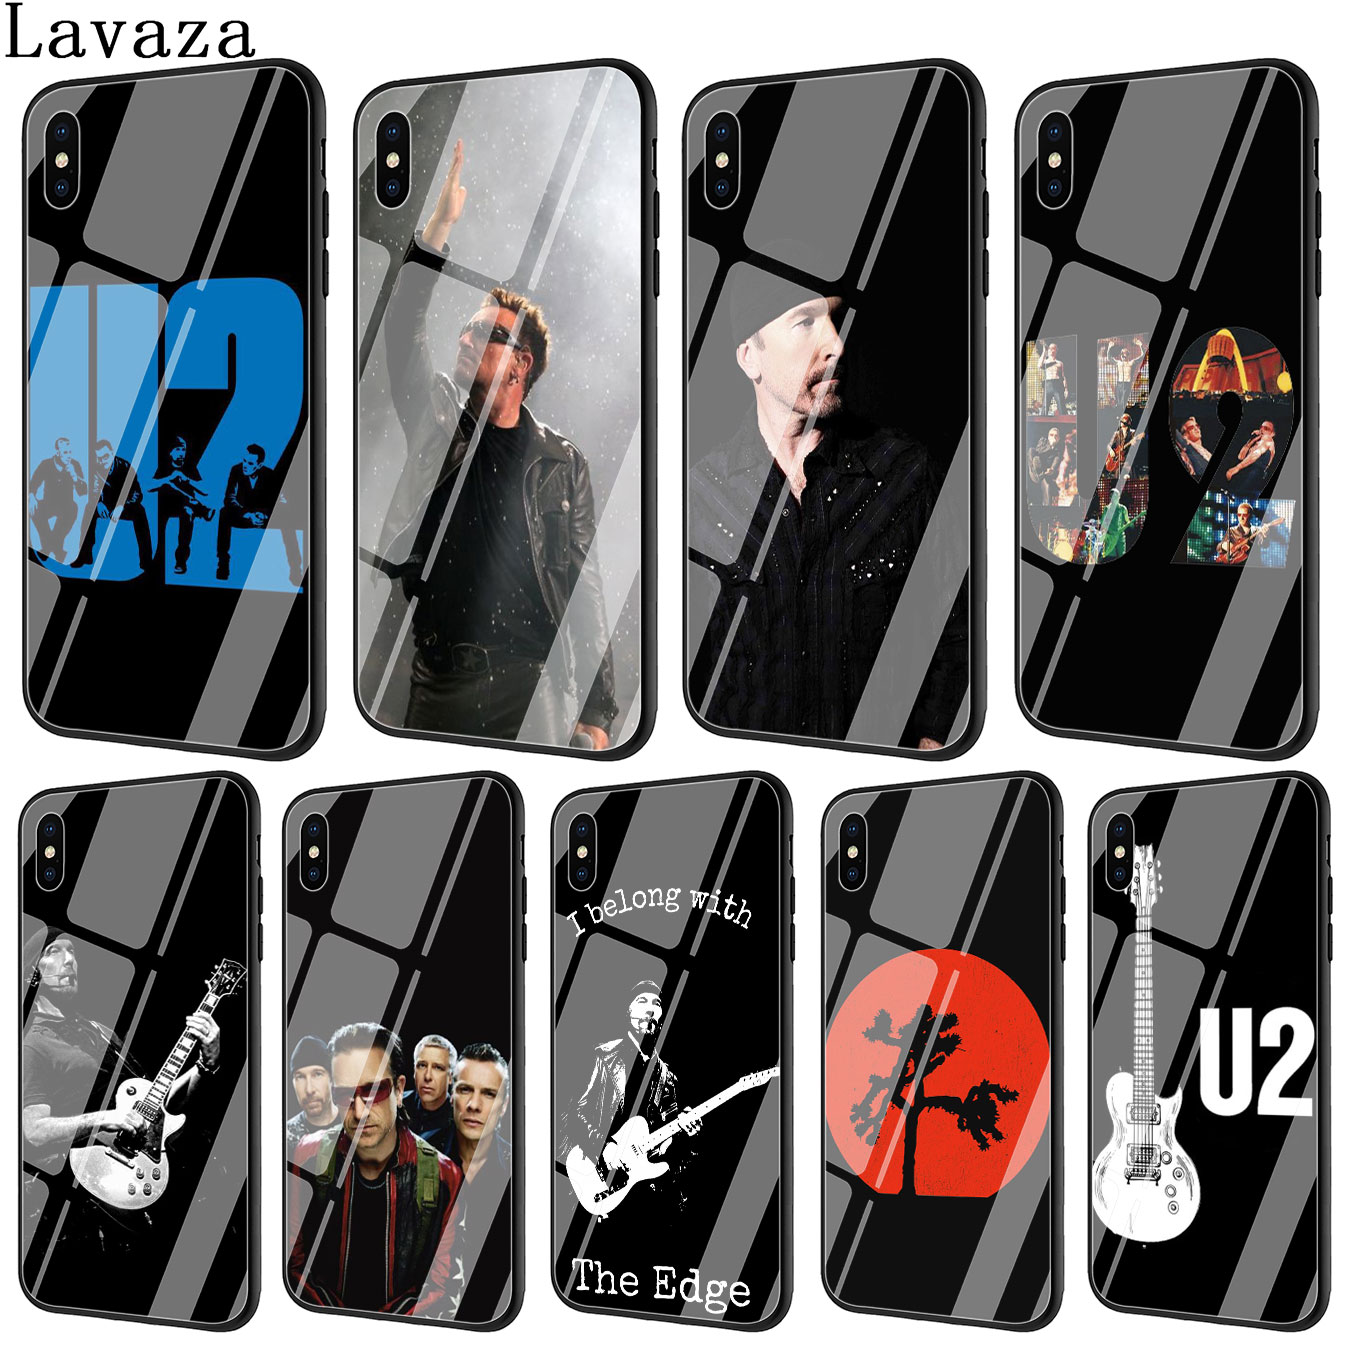 Lavaza U2 Bono The Edge Tempered Glass Phone Cover Case for Apple iPhone XR X XS Max 6 6S 7 8 Plus 5 5S SE 10 Cases 8Plus 7Plus image